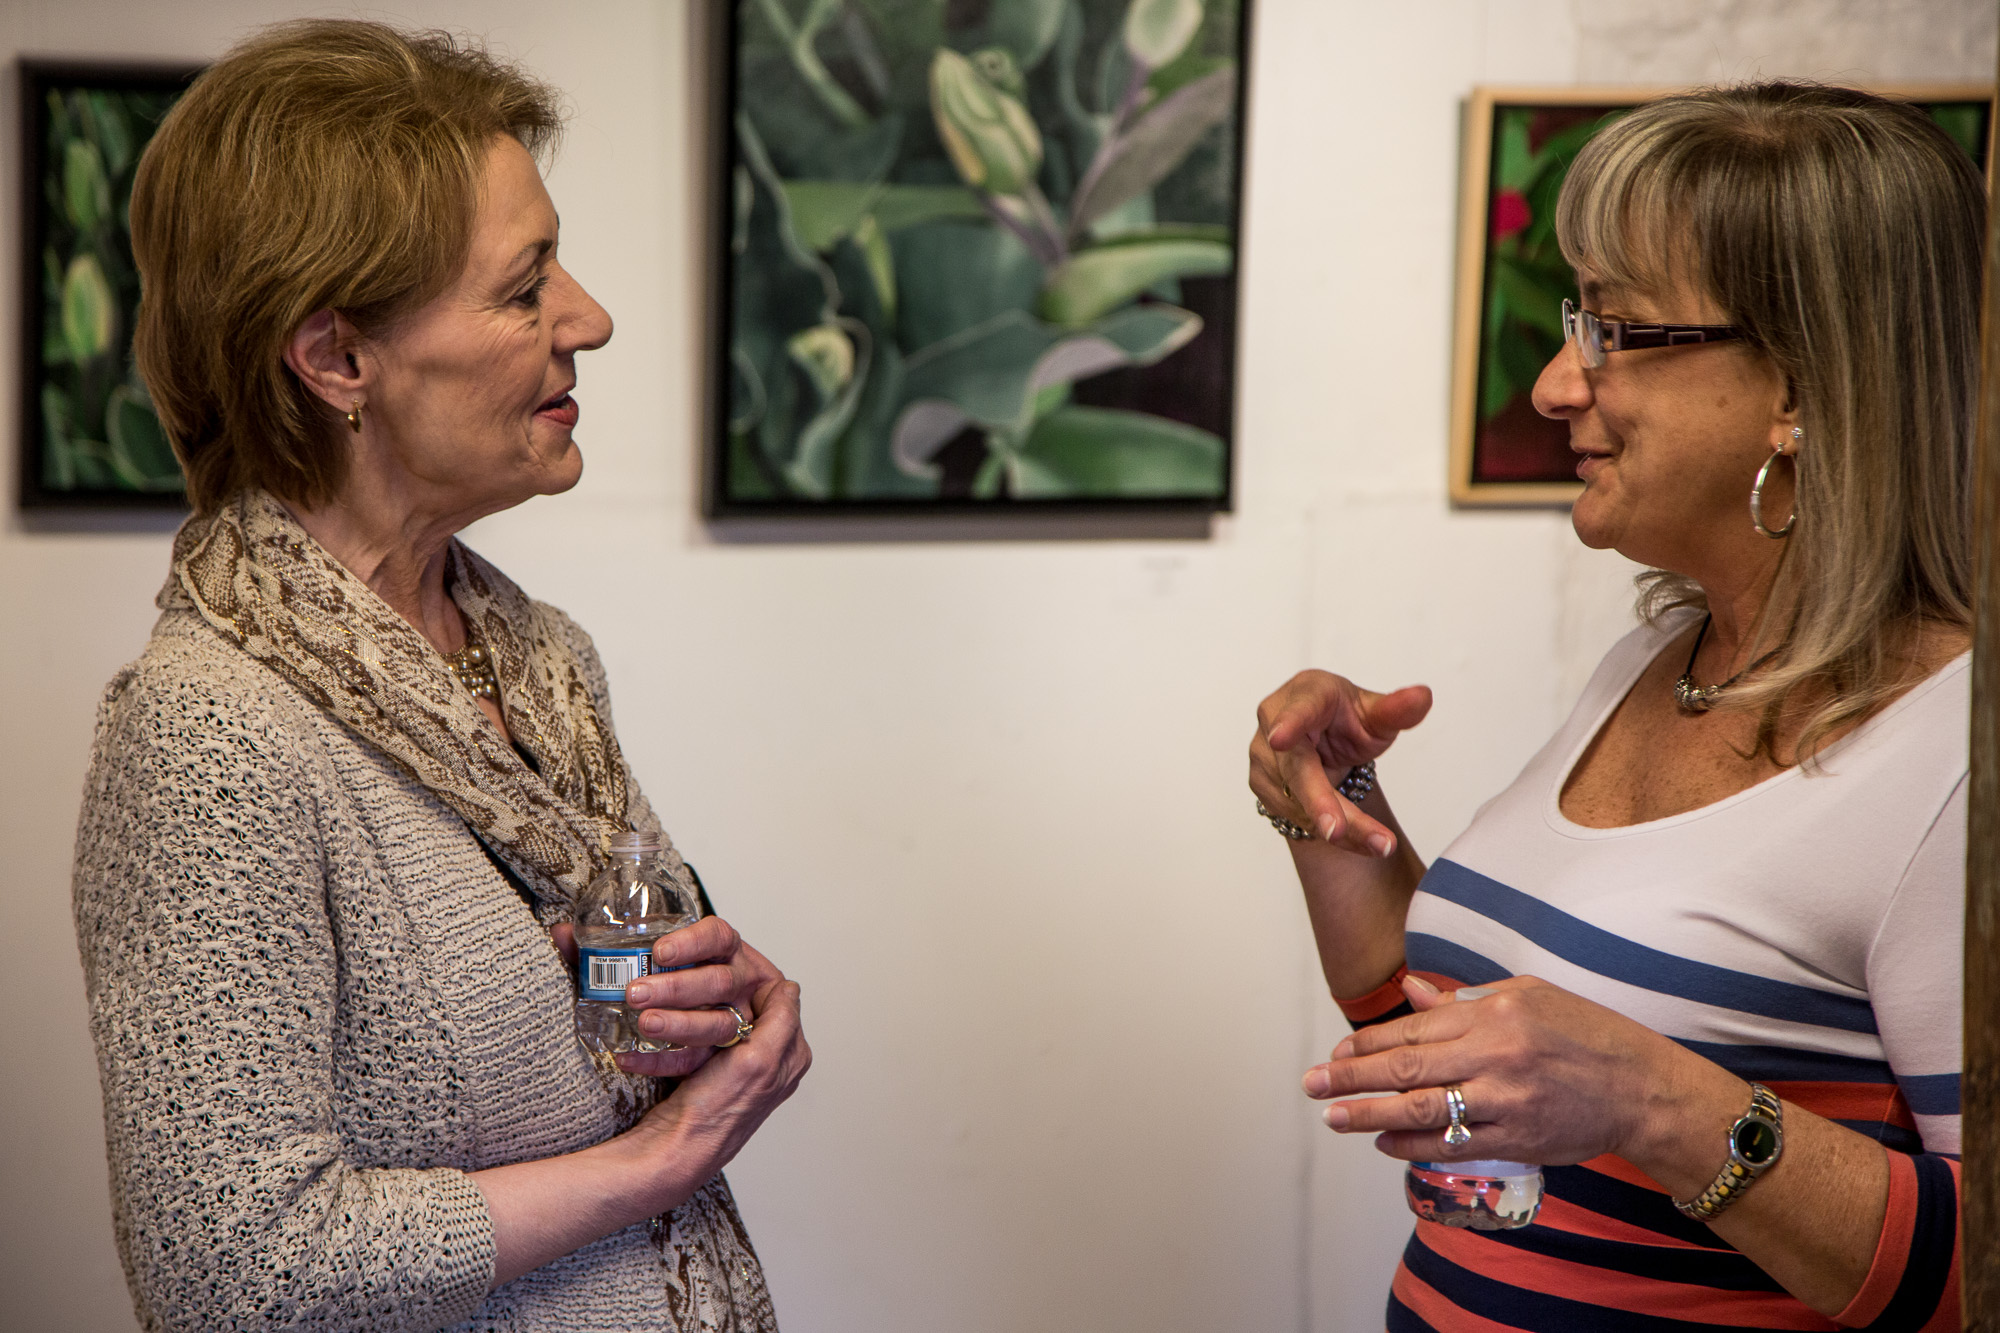 Kathy Guzman with a visitor in her Member's Gallery exhibit